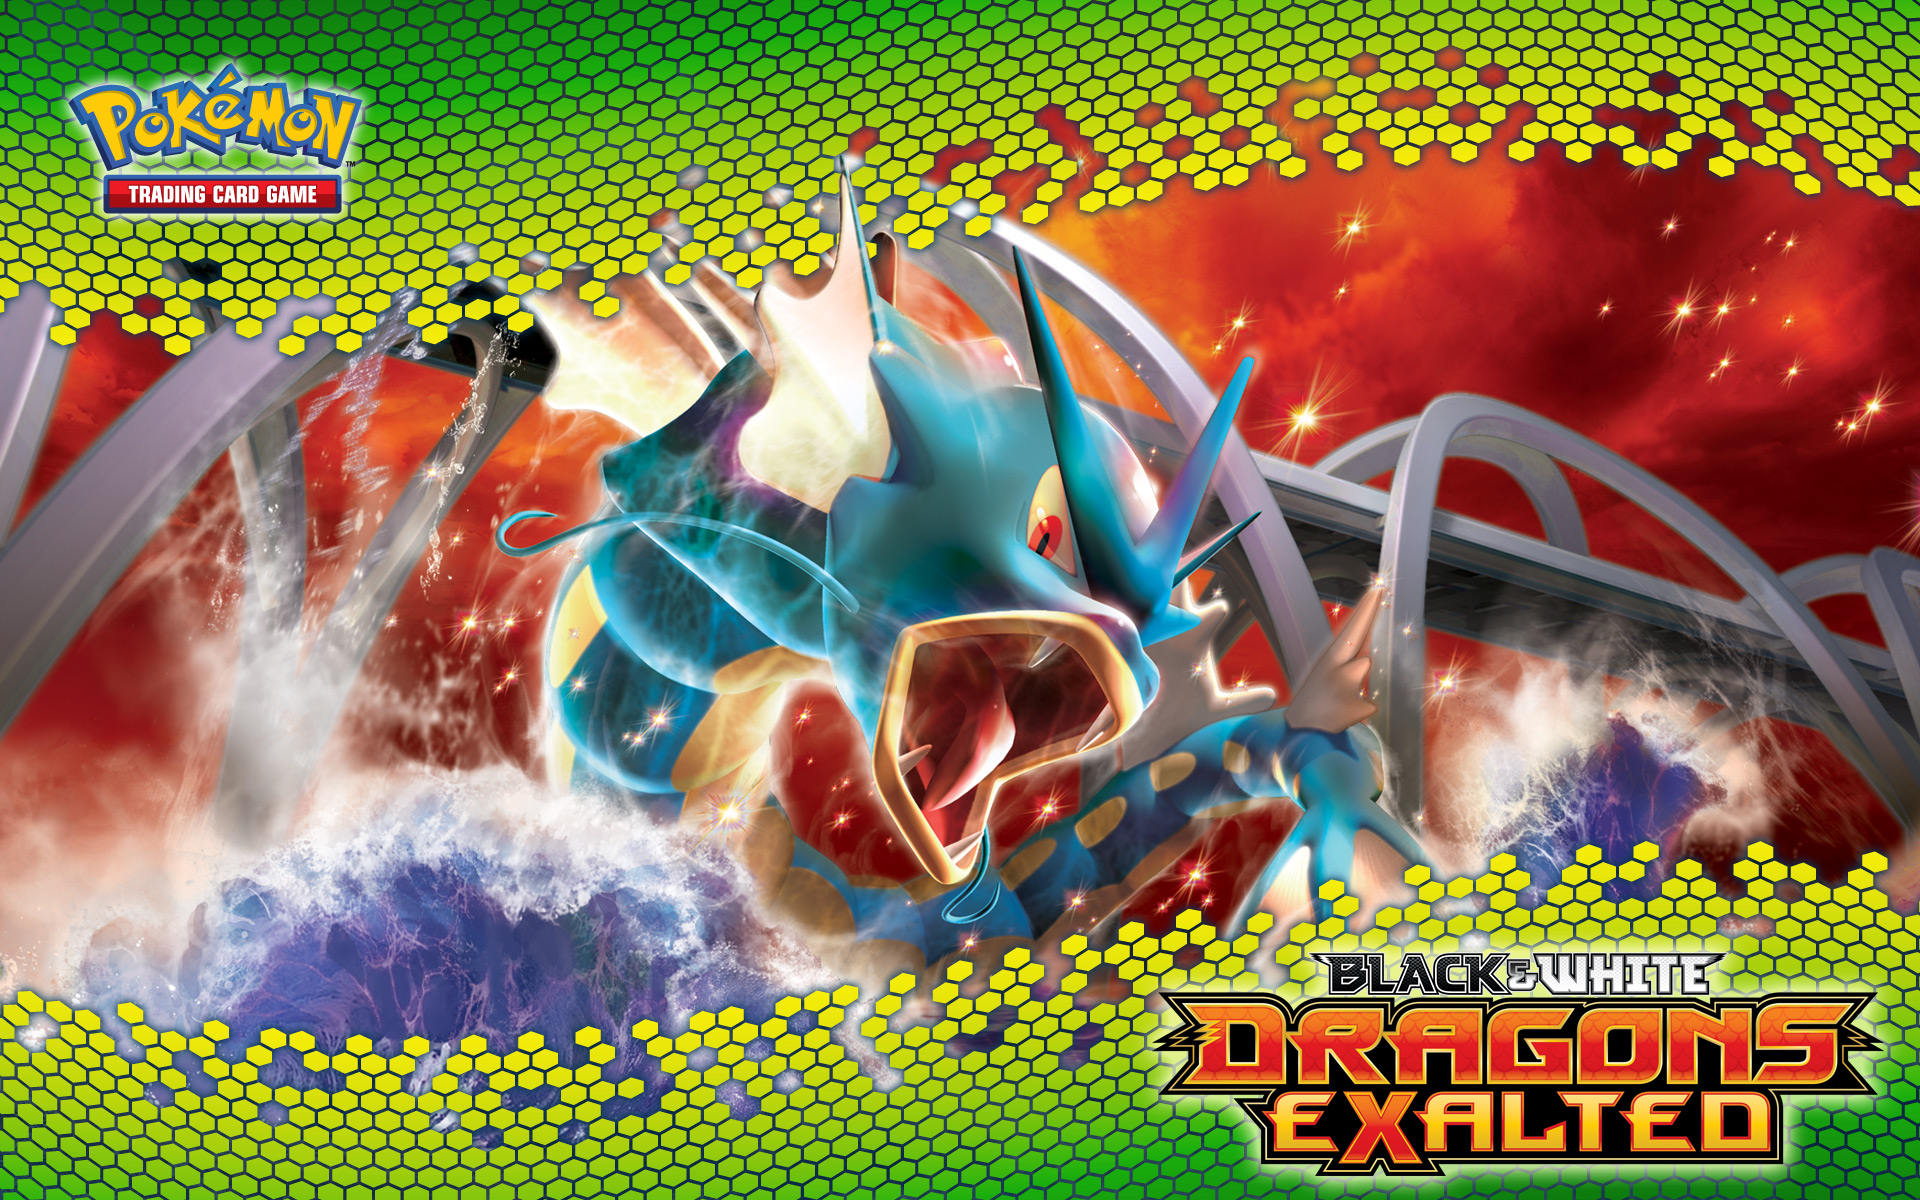 pokemon black and white 2 official walkthrough pdf download